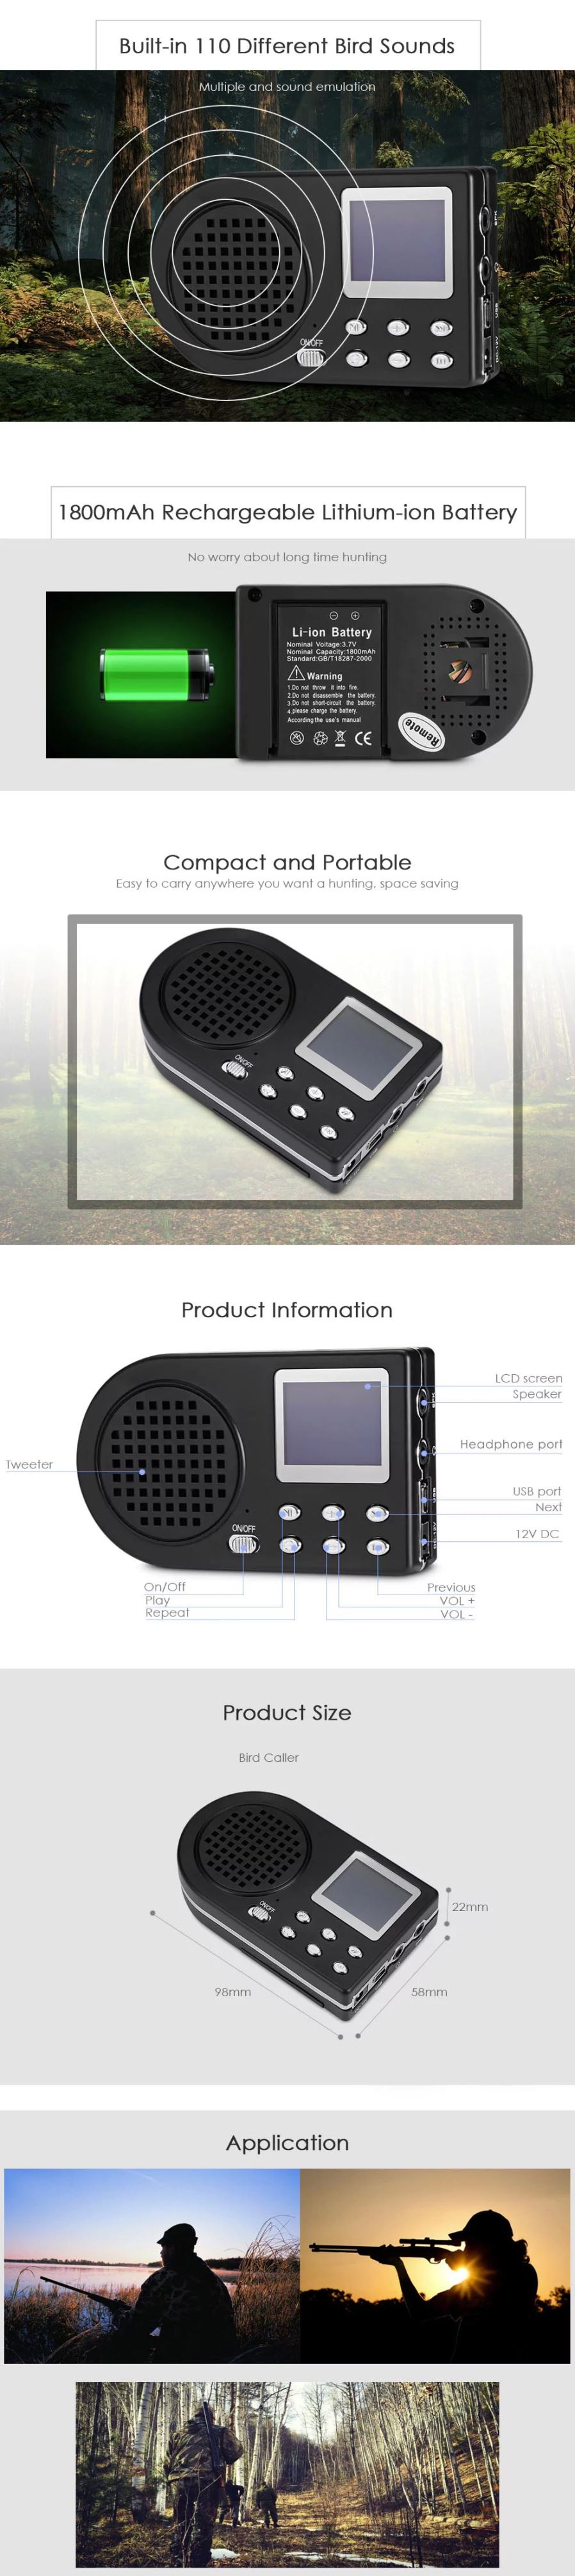 Cp 360 Mp3 Bird Caller Hunting Decoy Sound Loudspeaker Fish Electronics Circuit Lcd Portable Shooting Equipment Black Free Shipping Dealextreme